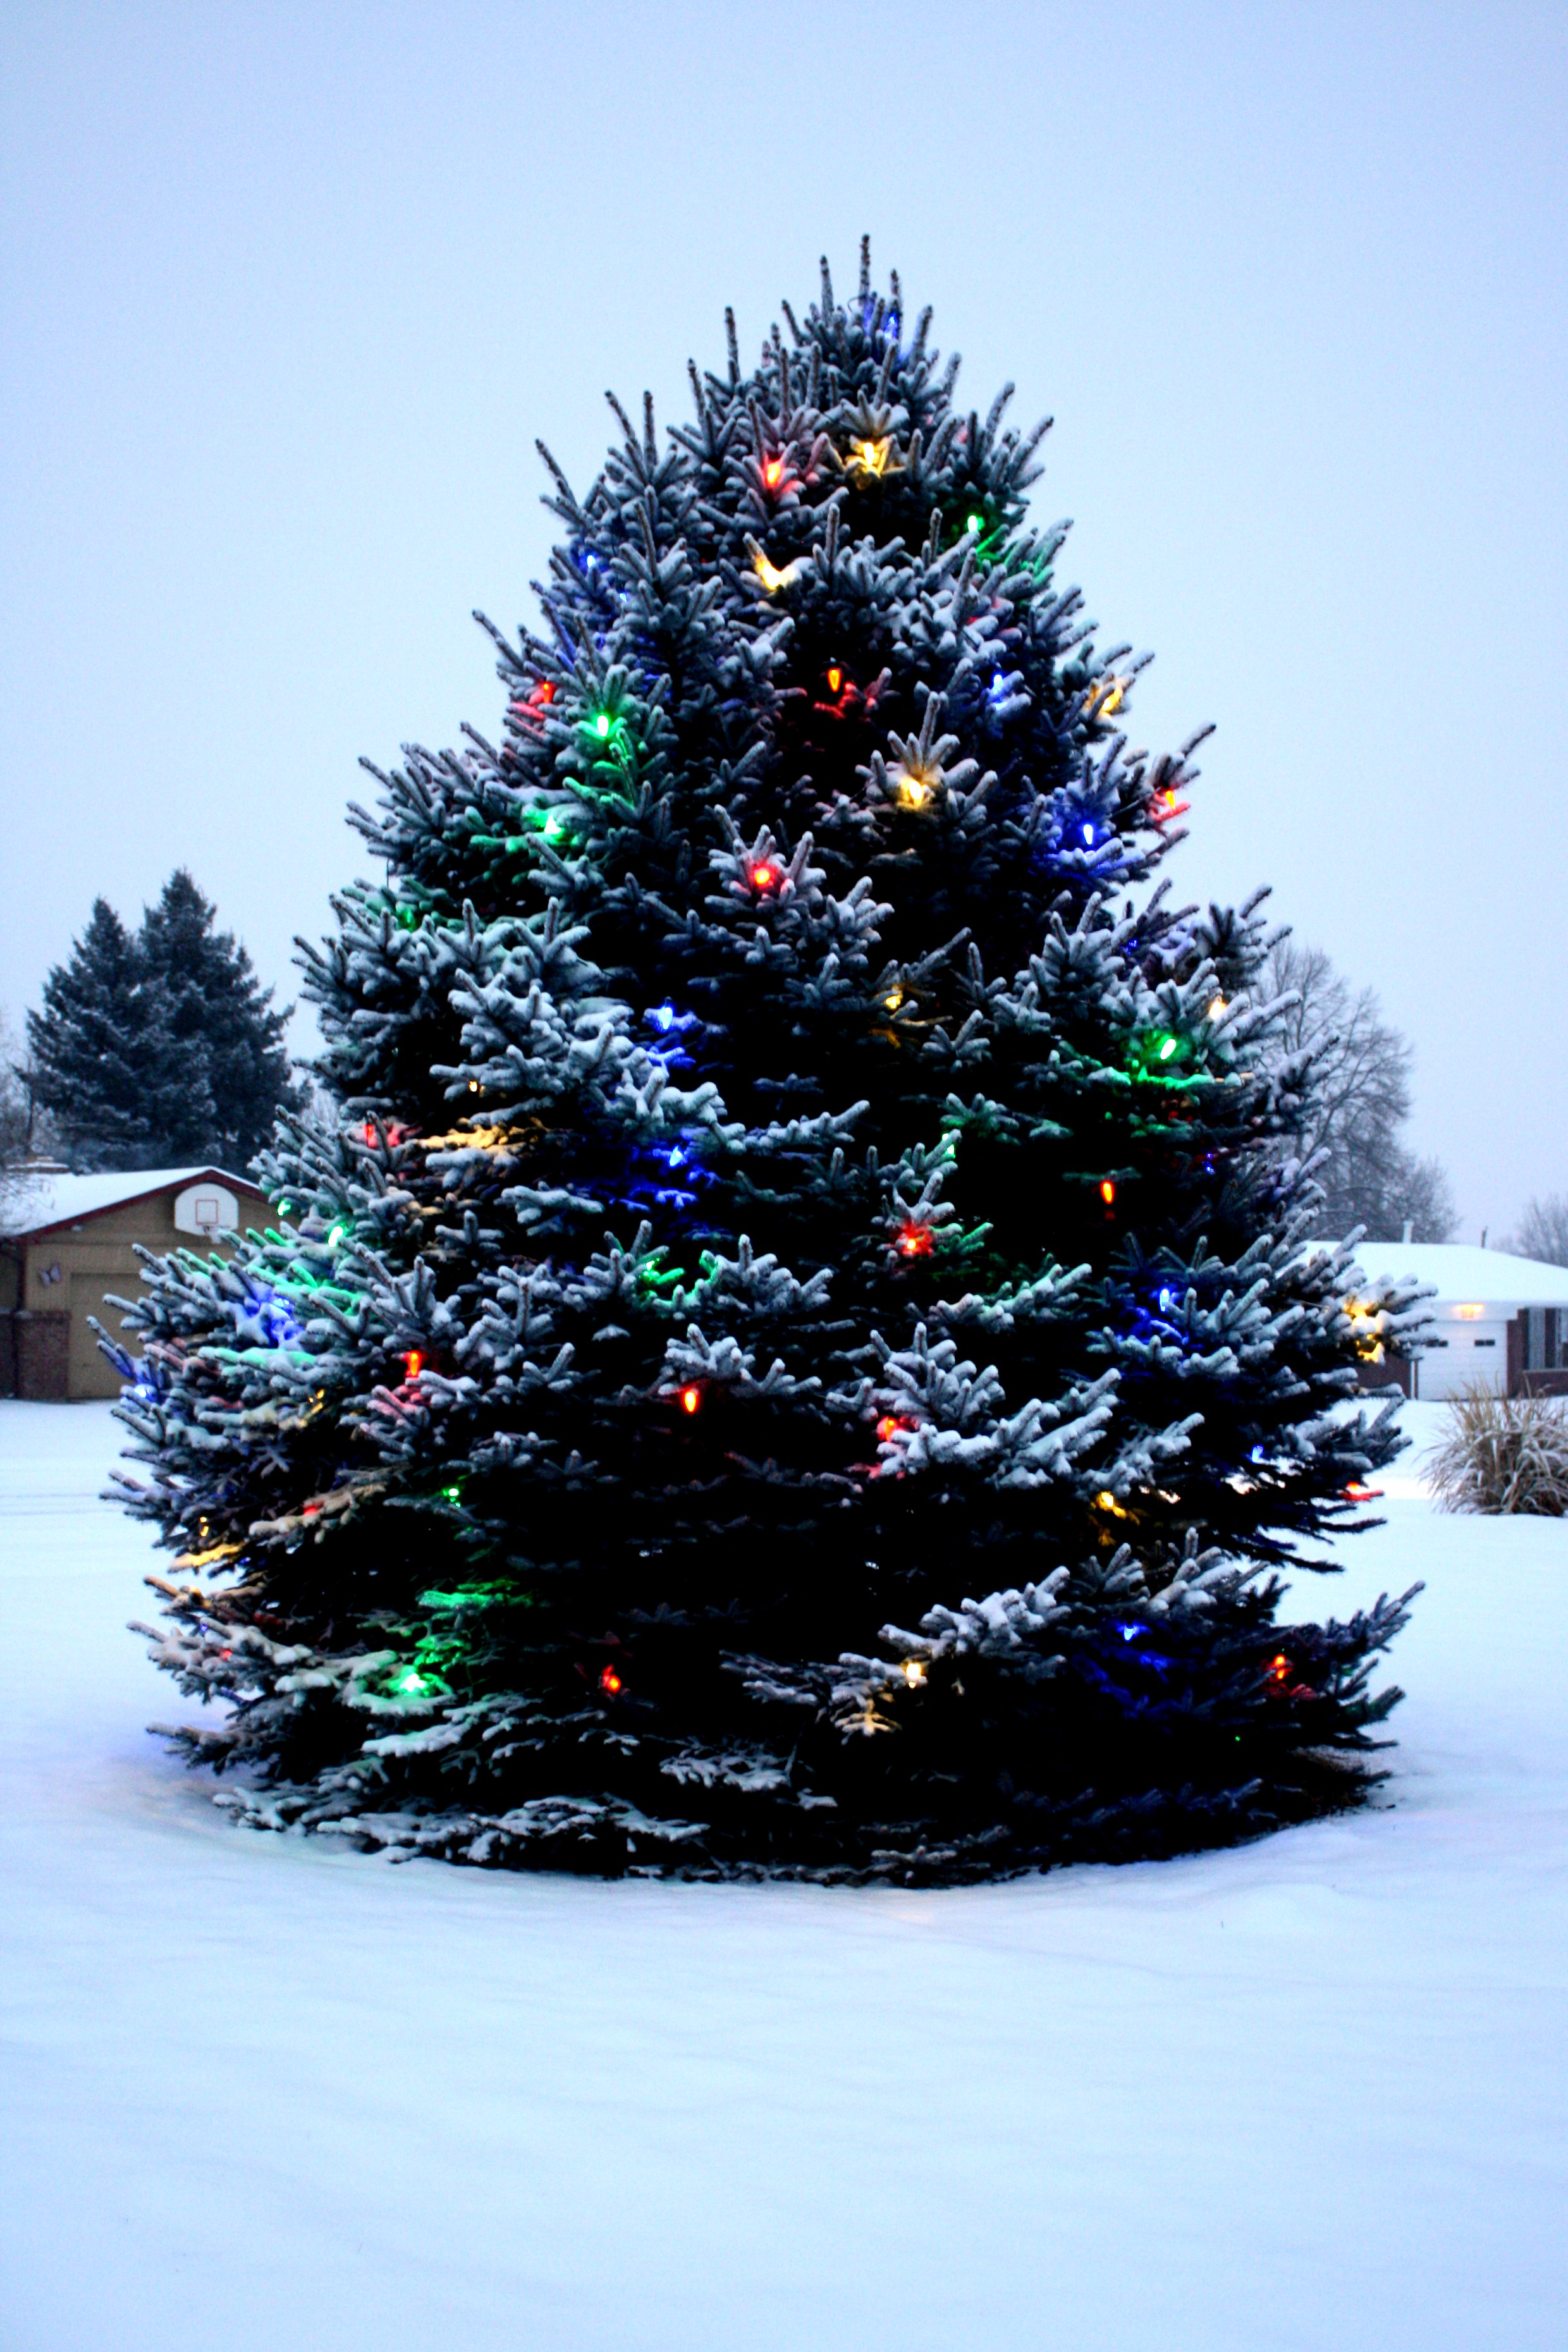 Outdoor Christmas Tree with Lights and Snow Picture | Free Photograph | Photos Public Domain